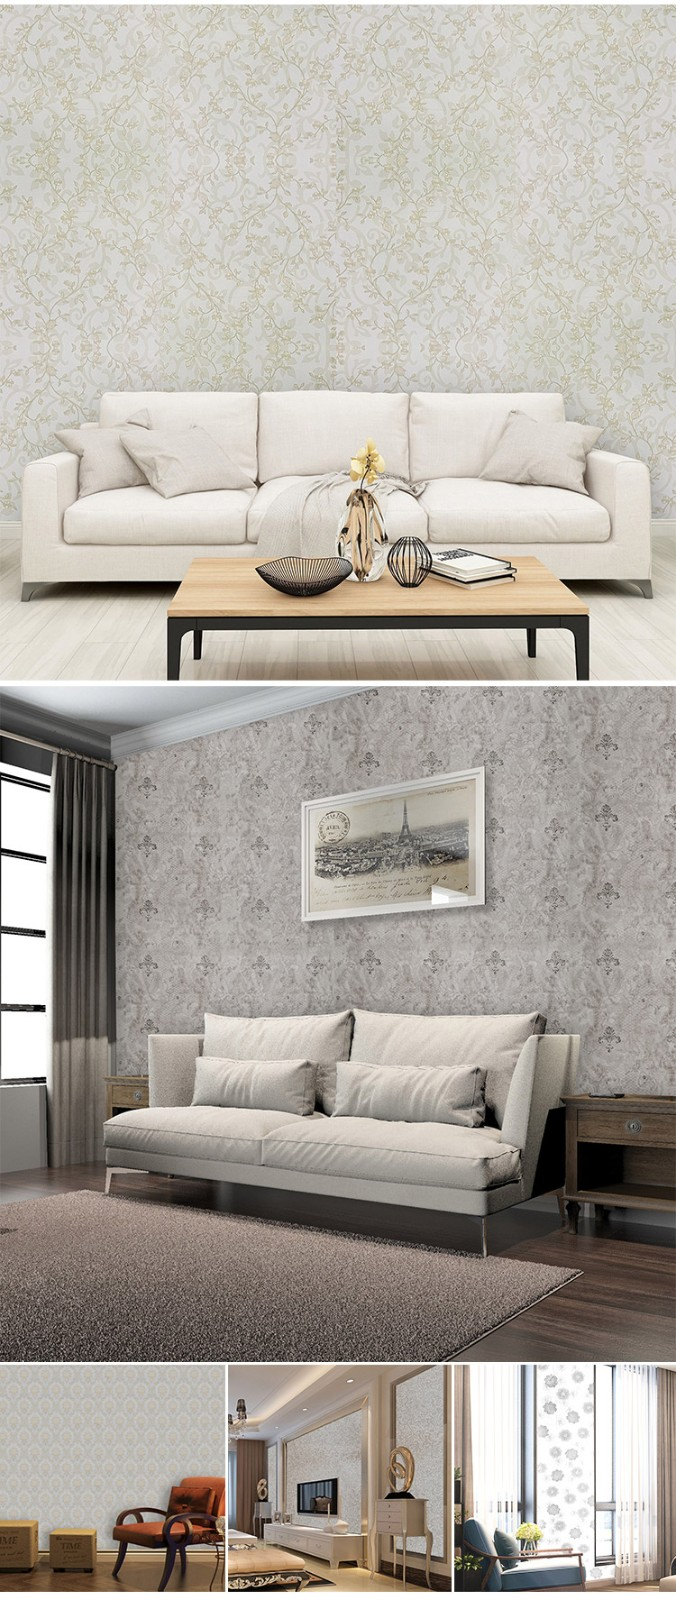 SUNYE wallpaper for bedroom walls factory direct supply for market-6